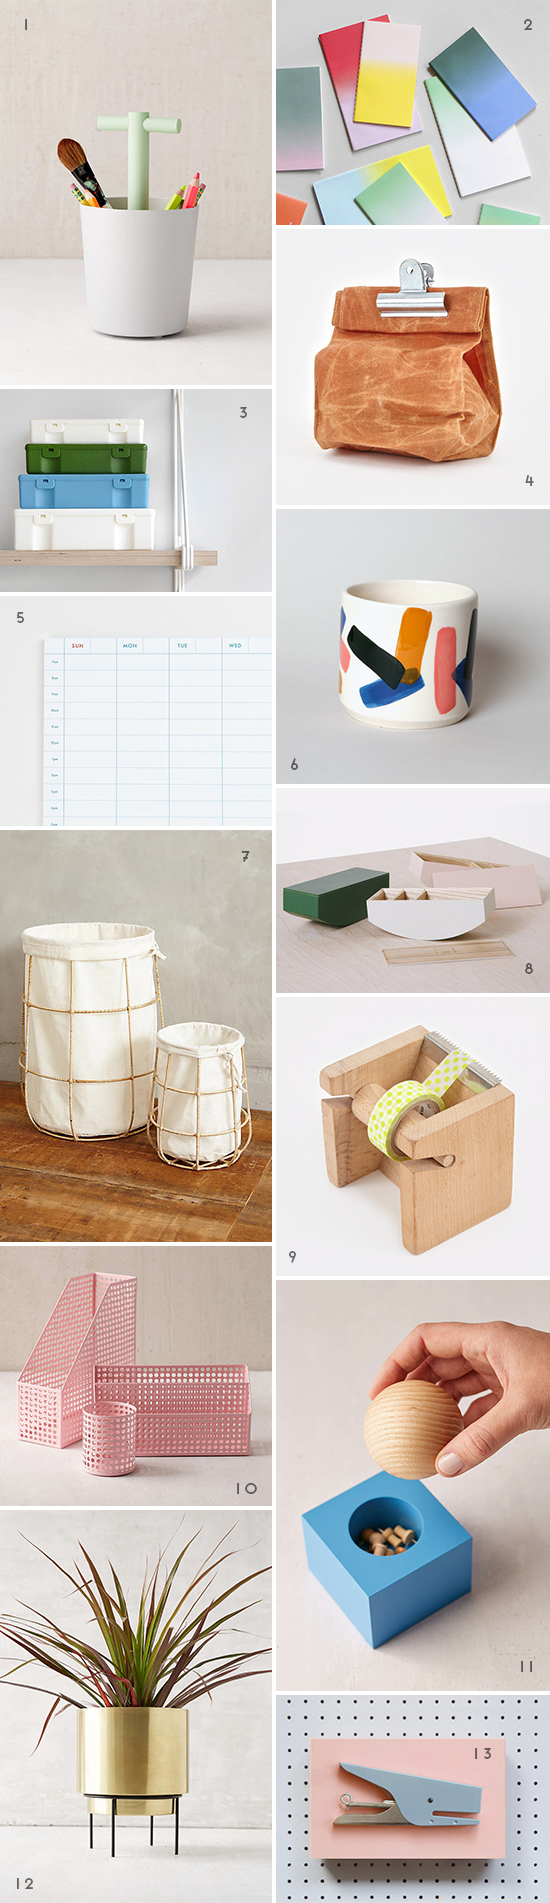 Cool Desk Items Inspired by Back to School